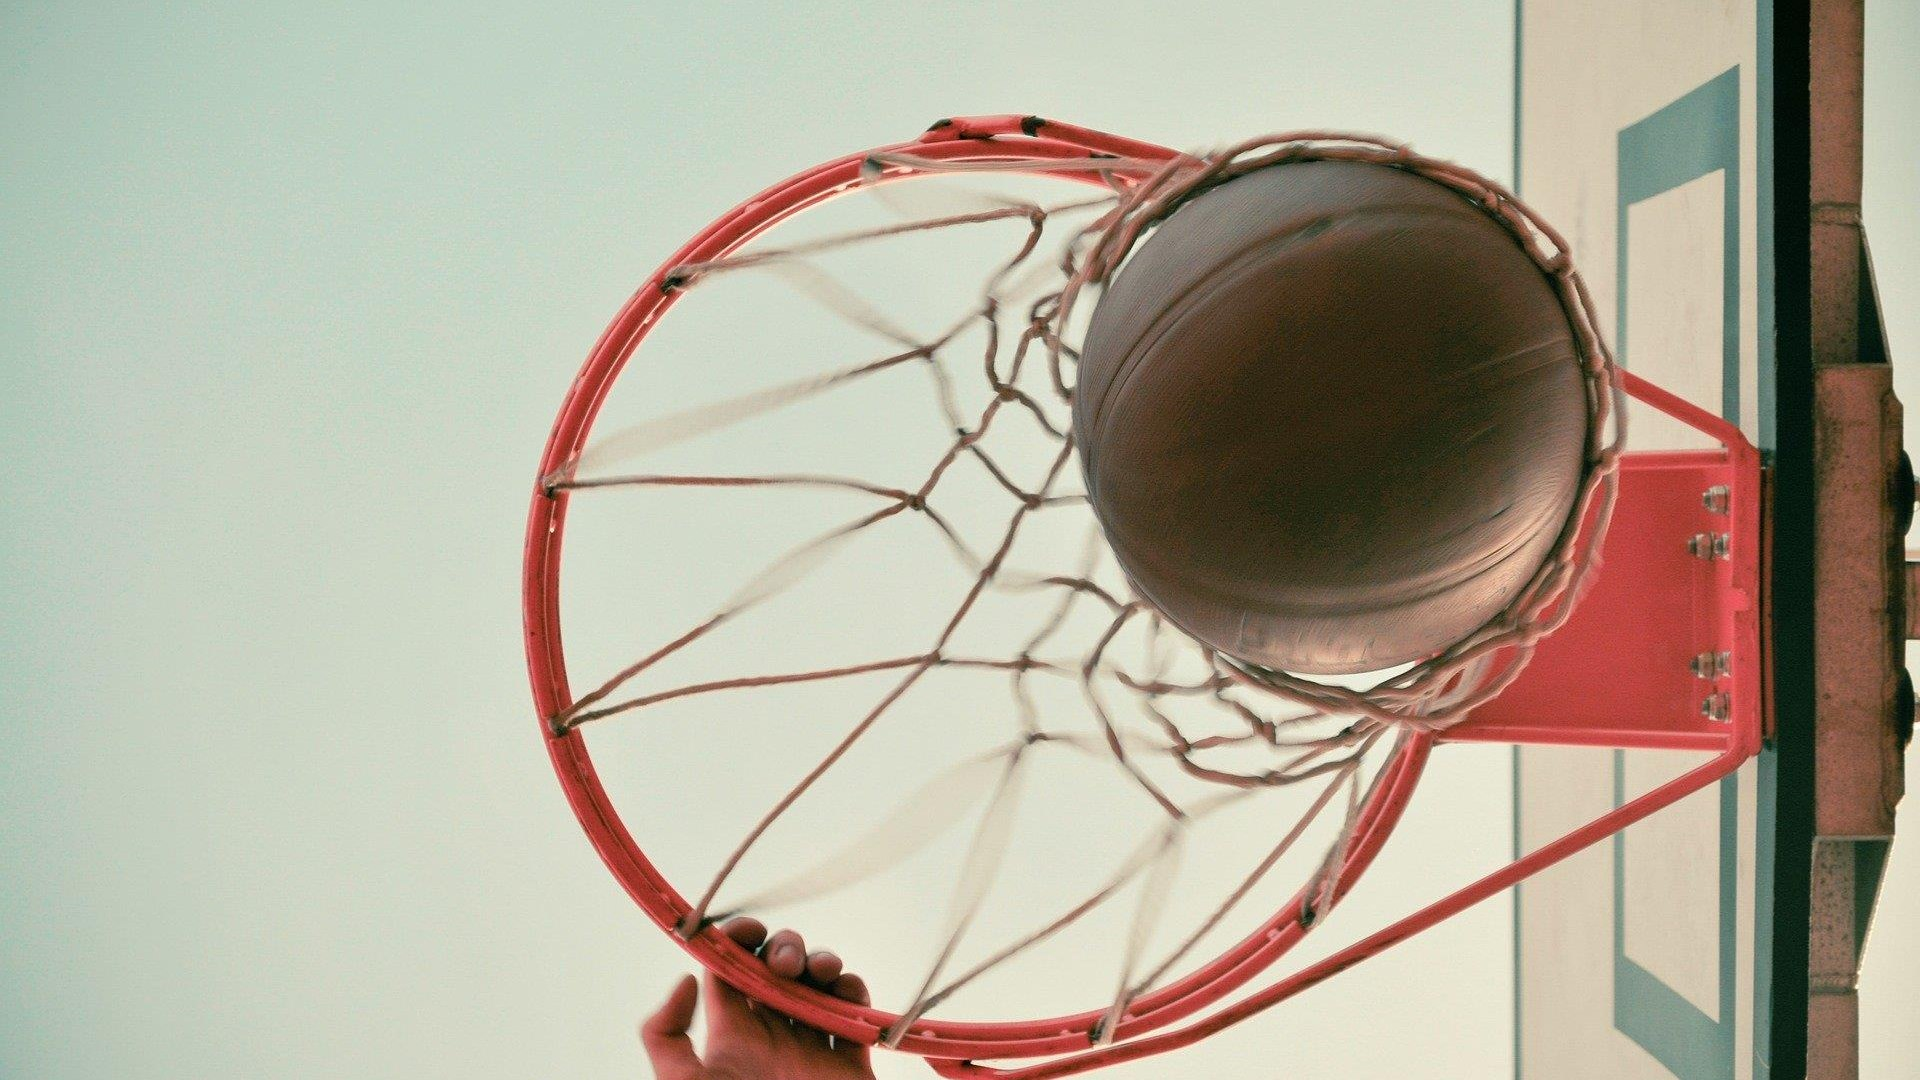 Basketball | © Free-Photos auf Pixabay